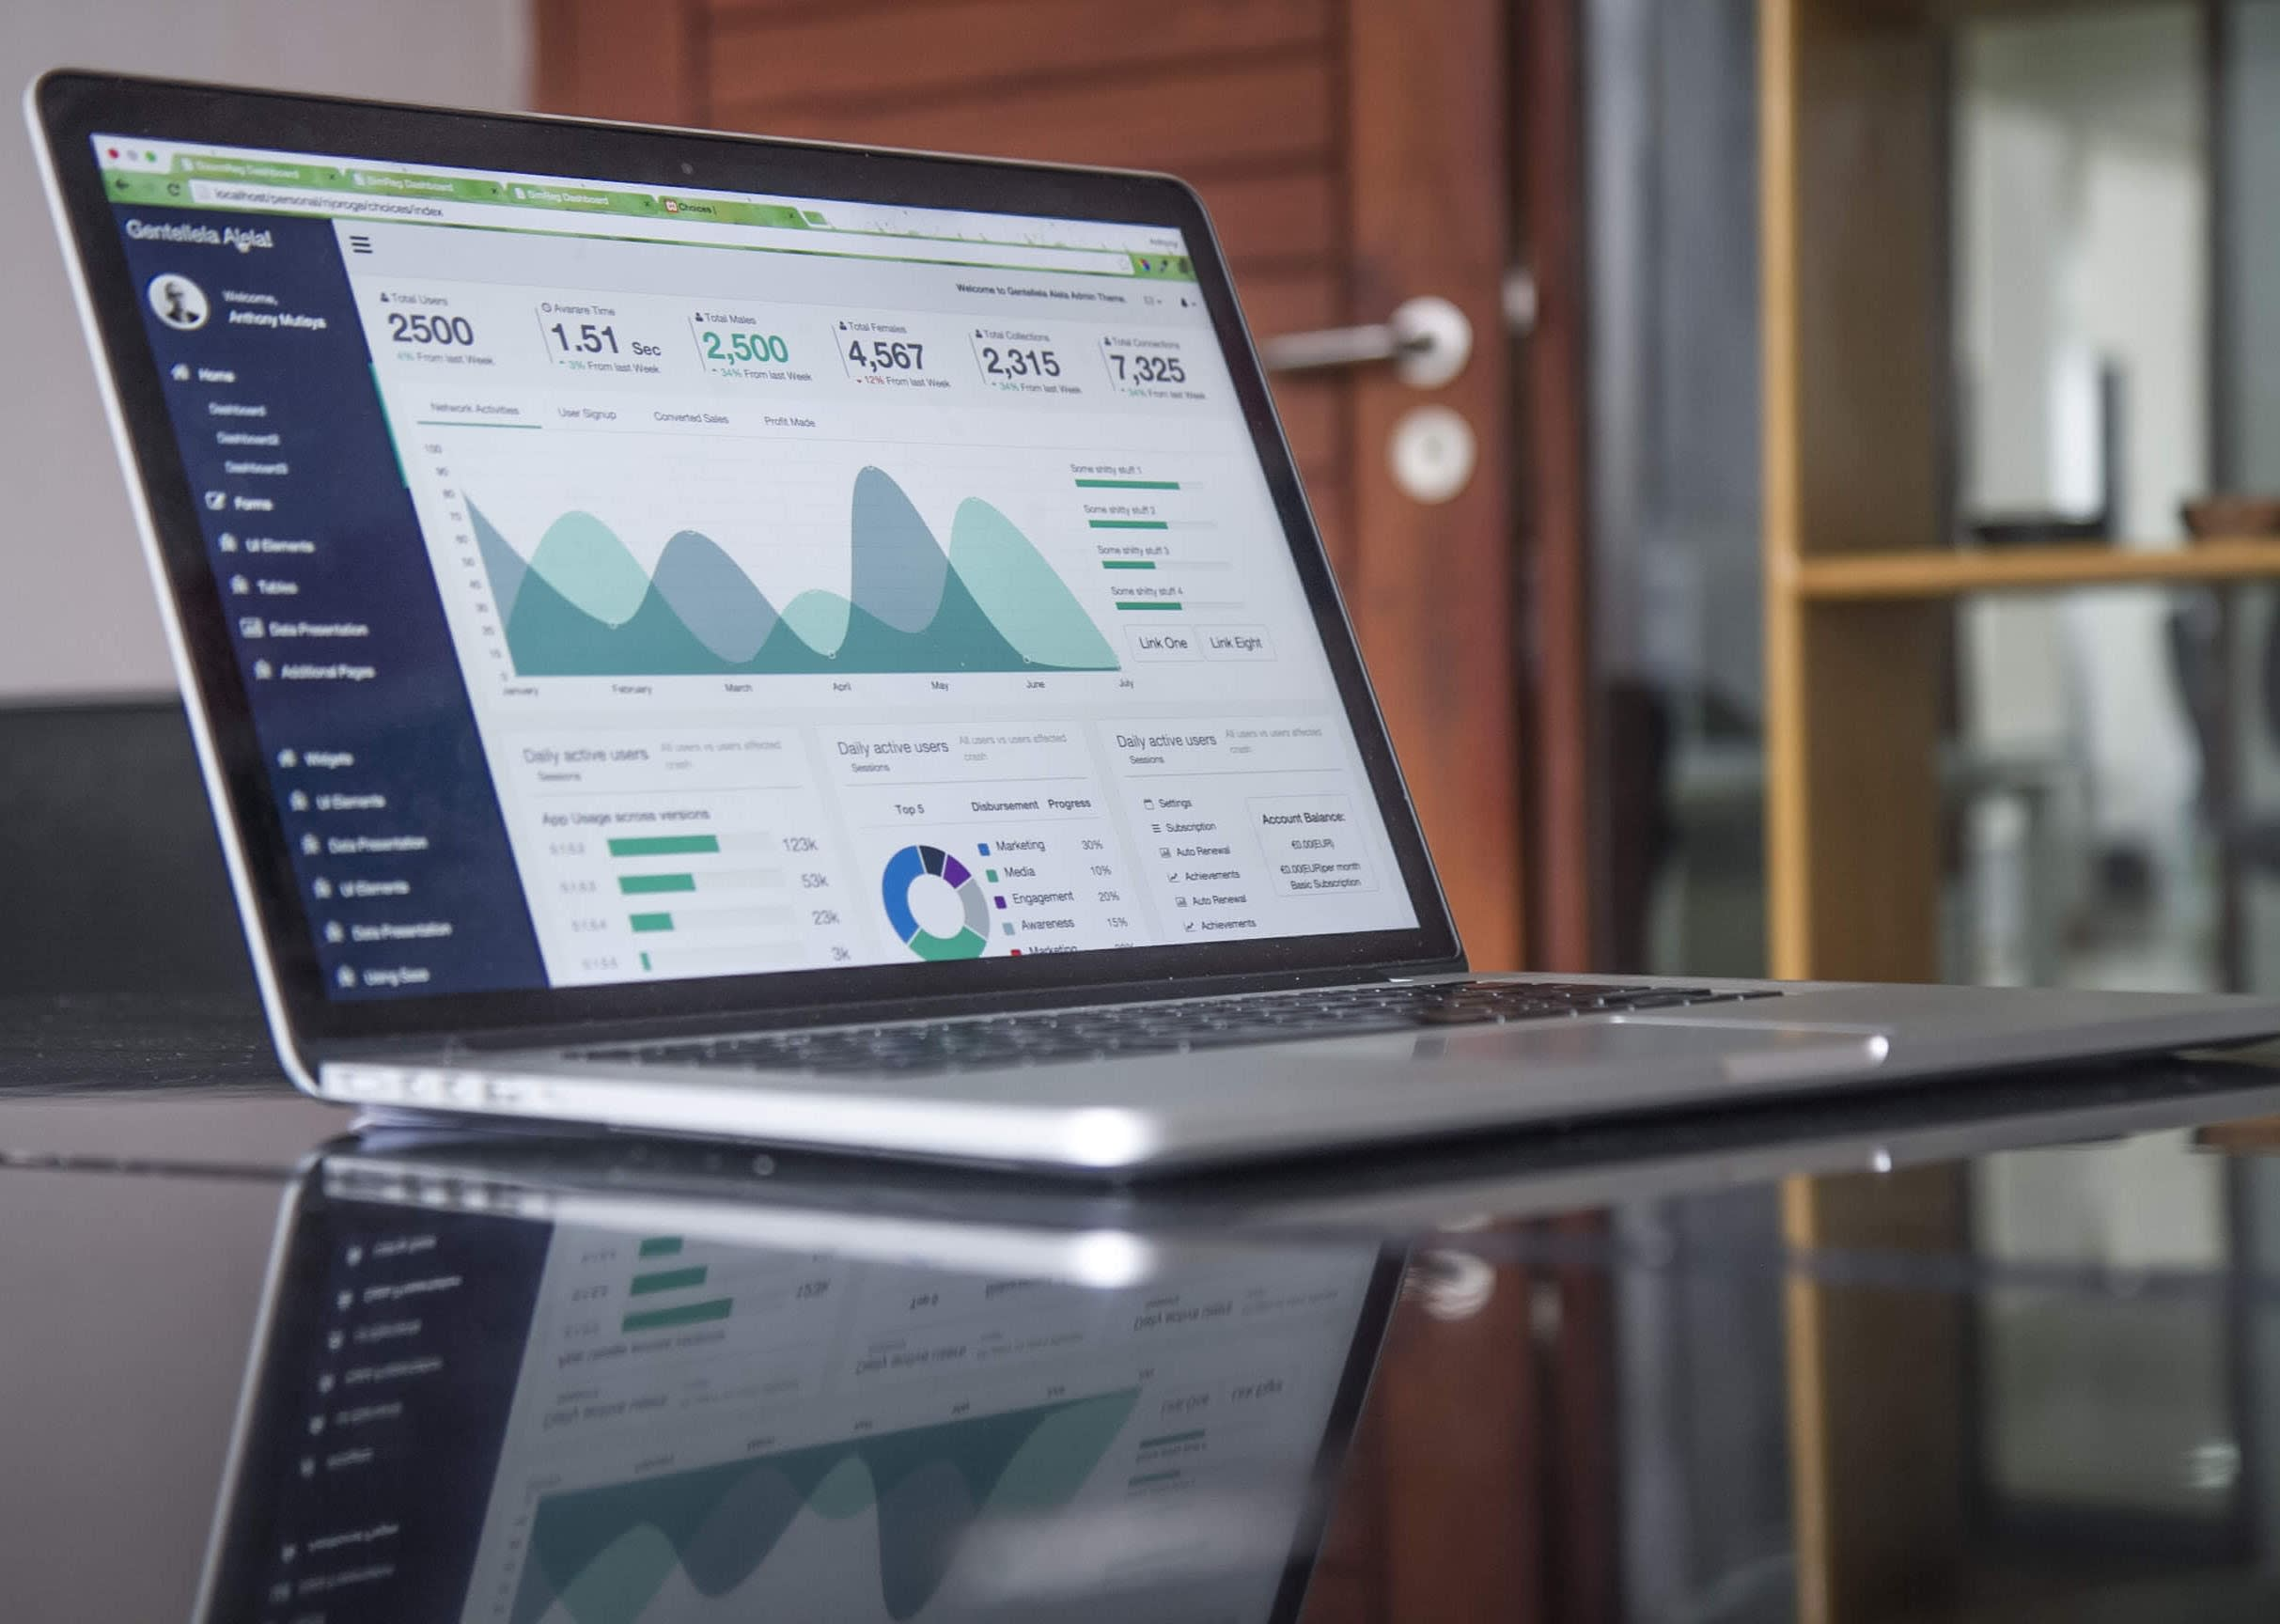 Seven Social Media Tools We're Thankful For in 2019 - An open laptop computer sitting on top of a table - Analytics